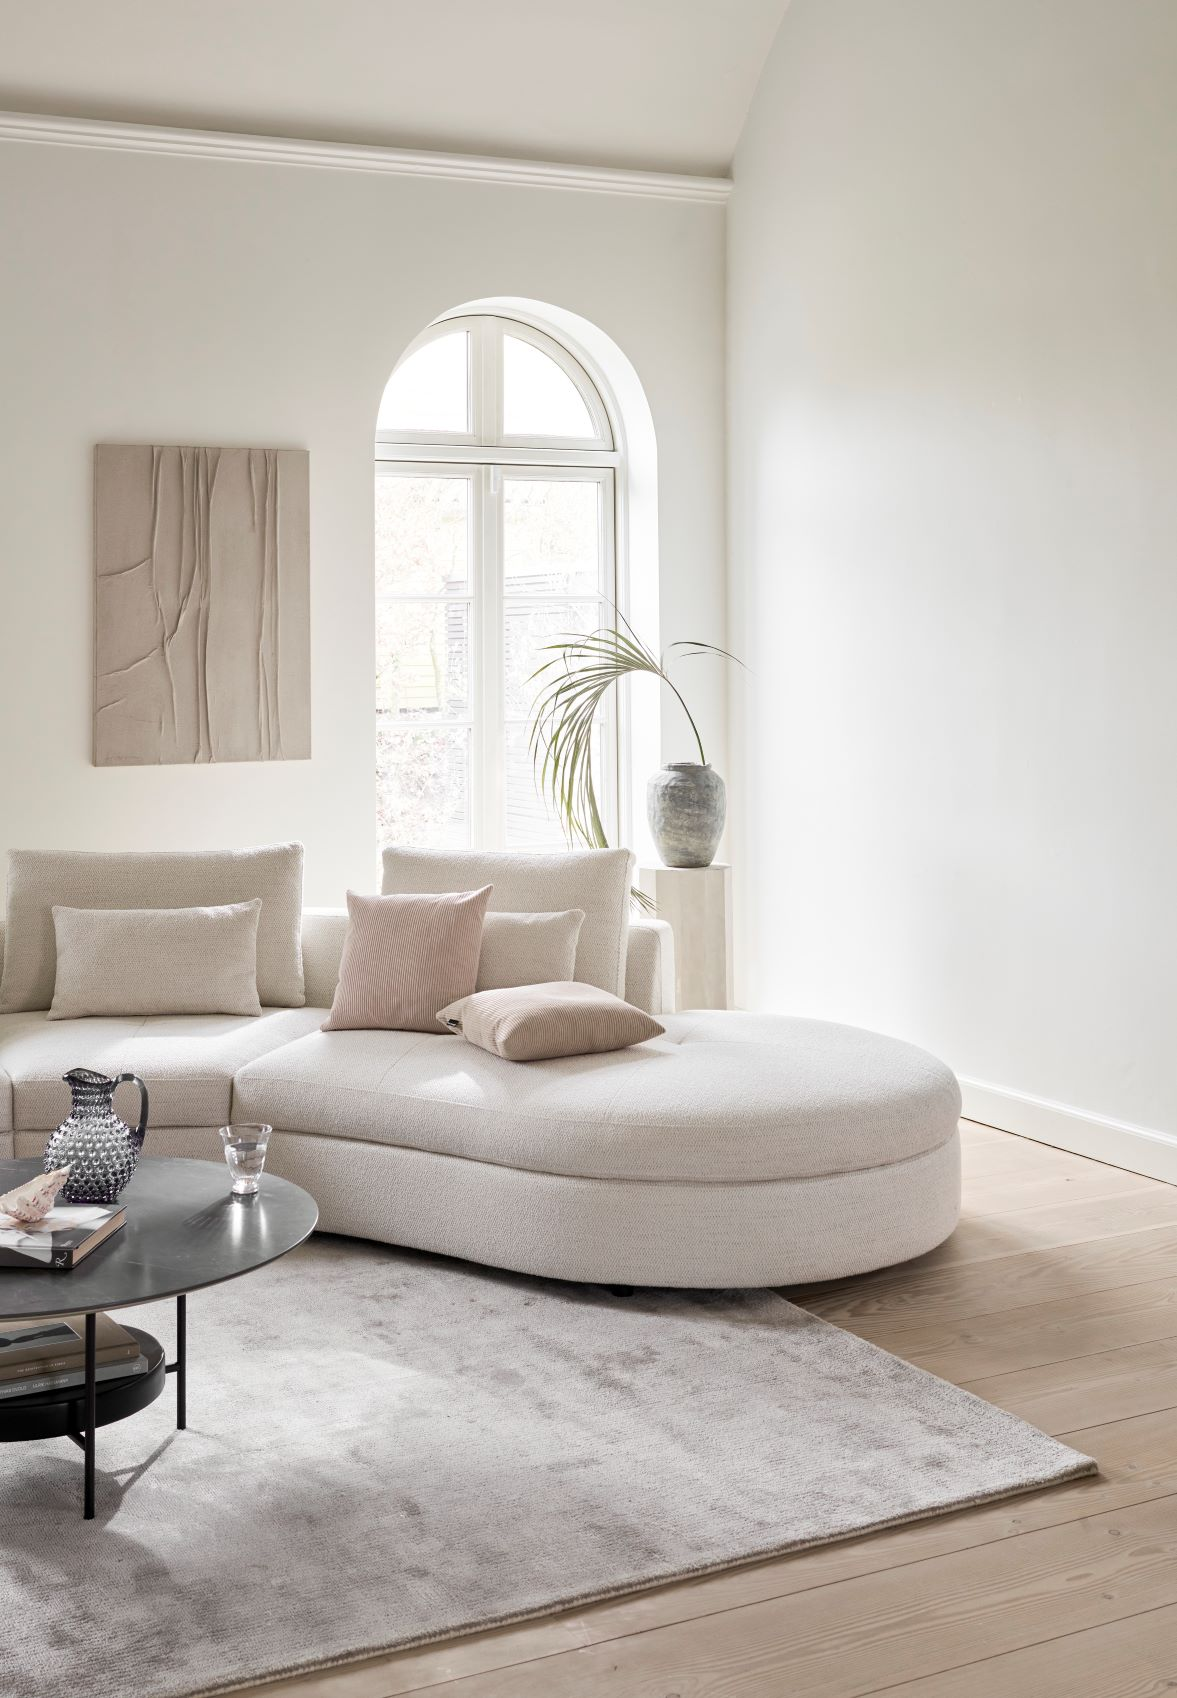 BoConcept blends beauty and functionality with new sofa, Bergamo